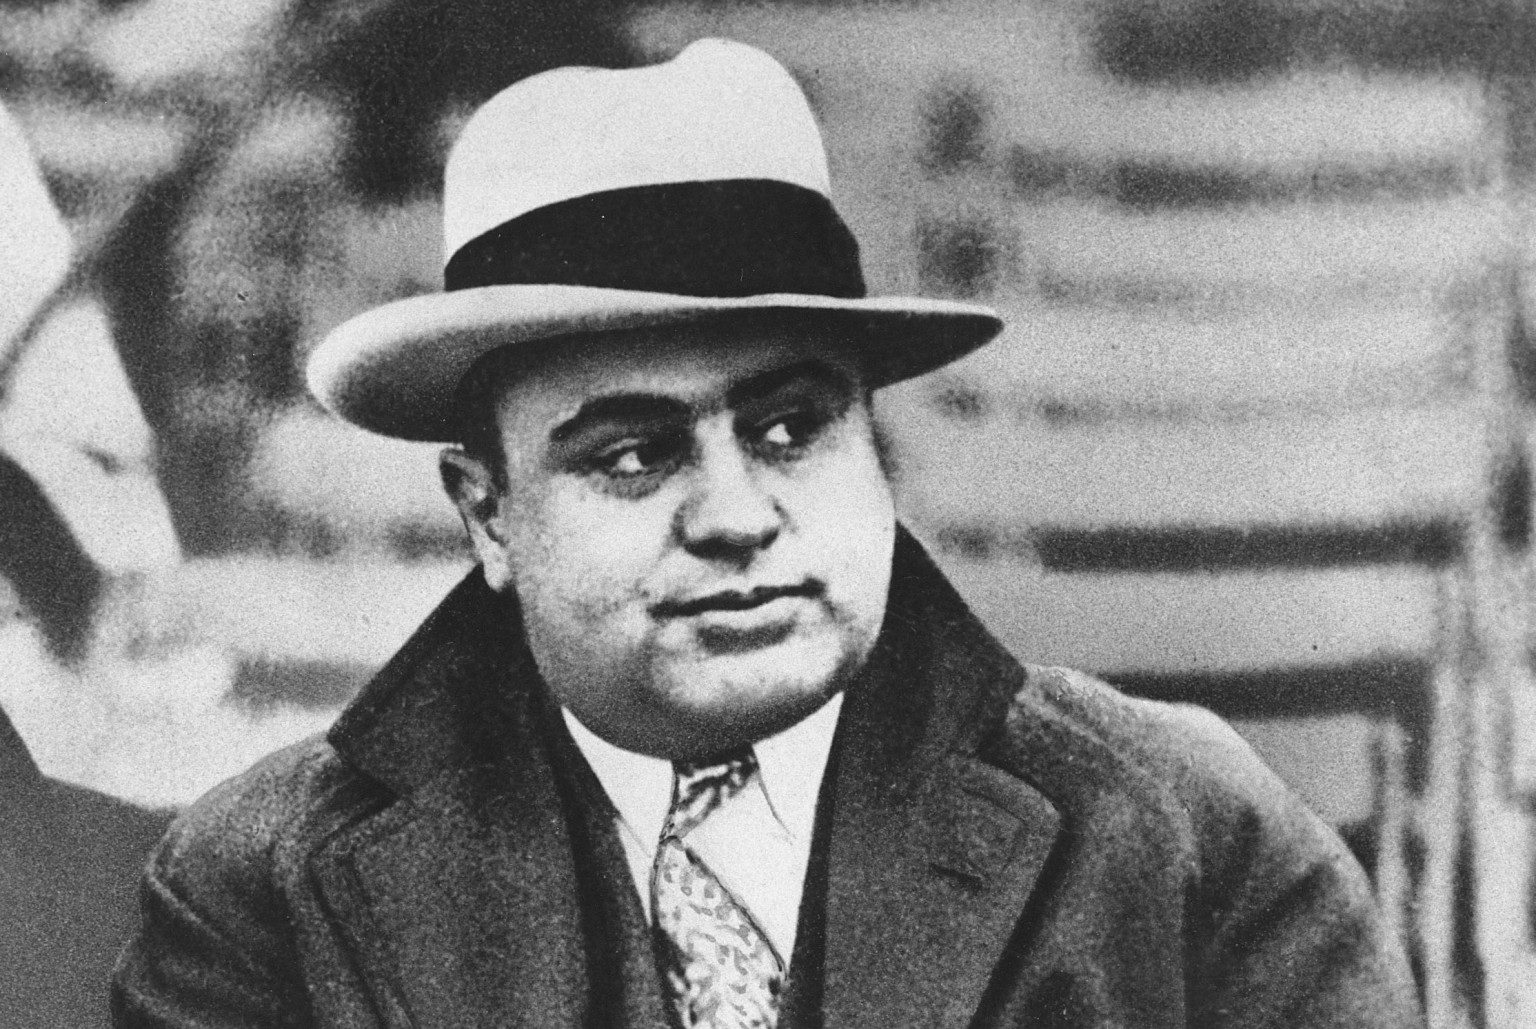 a biography of alphonse capone who murdered his way to the top of the chicago mafia Americanmafiacom's history of the mafia  40723 brasil a biography of alphonse capone and his murdered his way to the top of the chicago mafia.